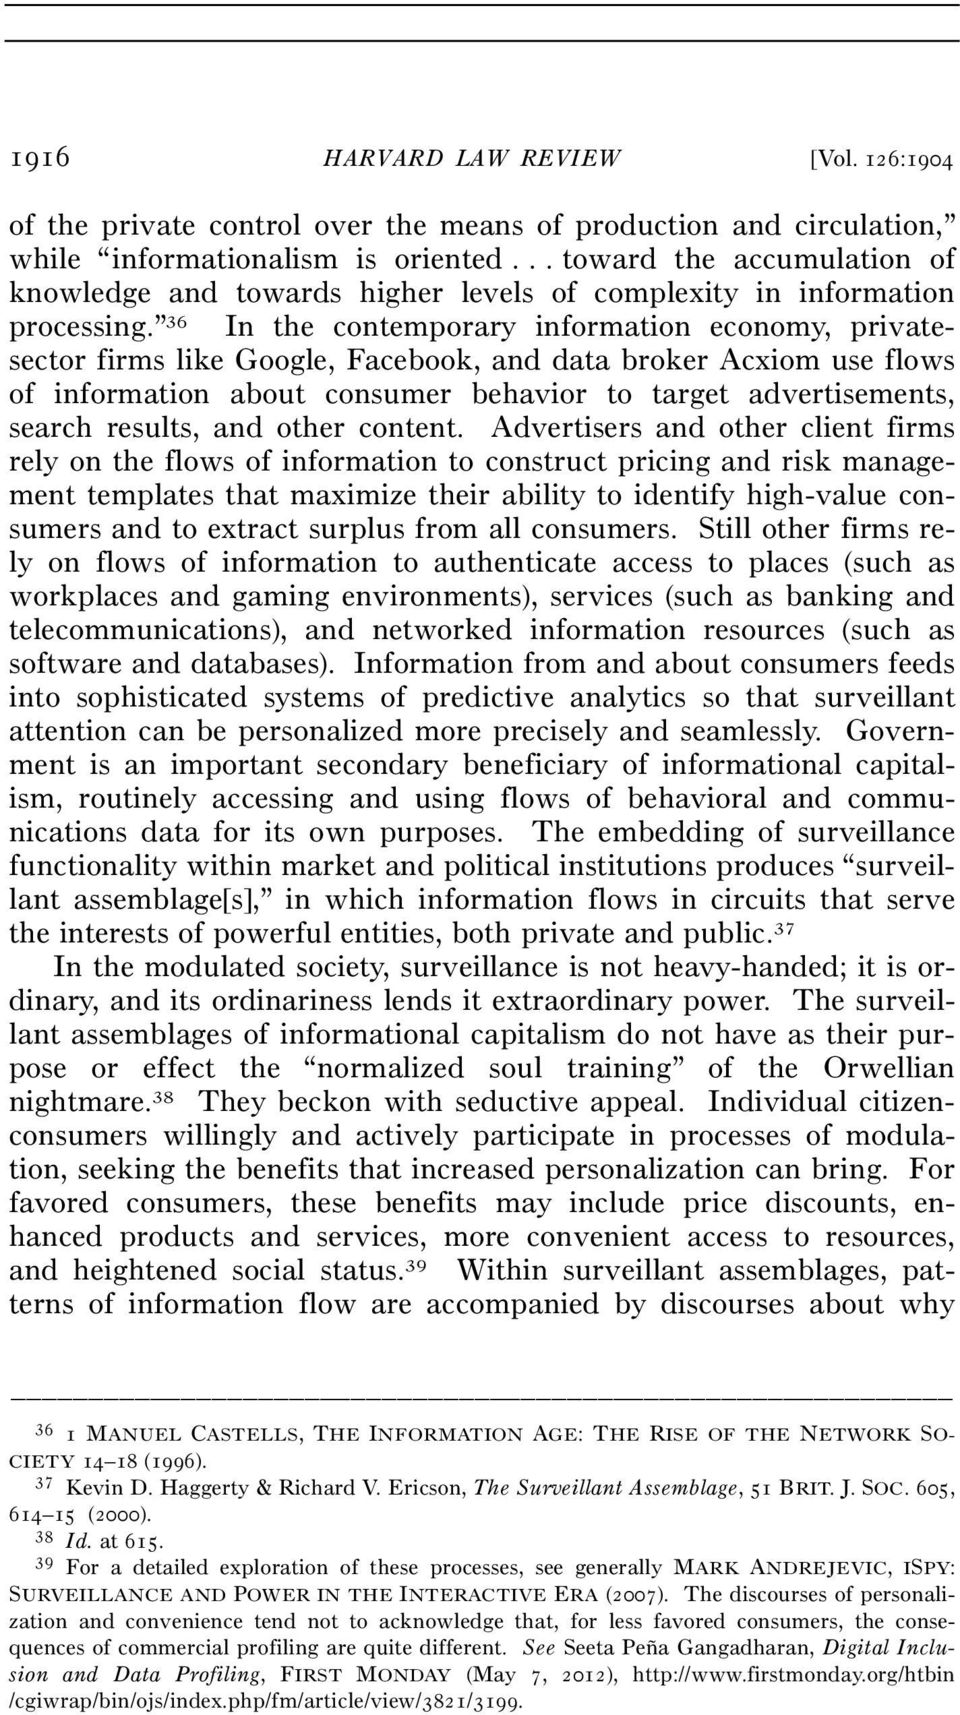 36 In the contemporary information economy, privatesector firms like Google, Facebook, and data broker Acxiom use flows of information about consumer behavior to target advertisements, search